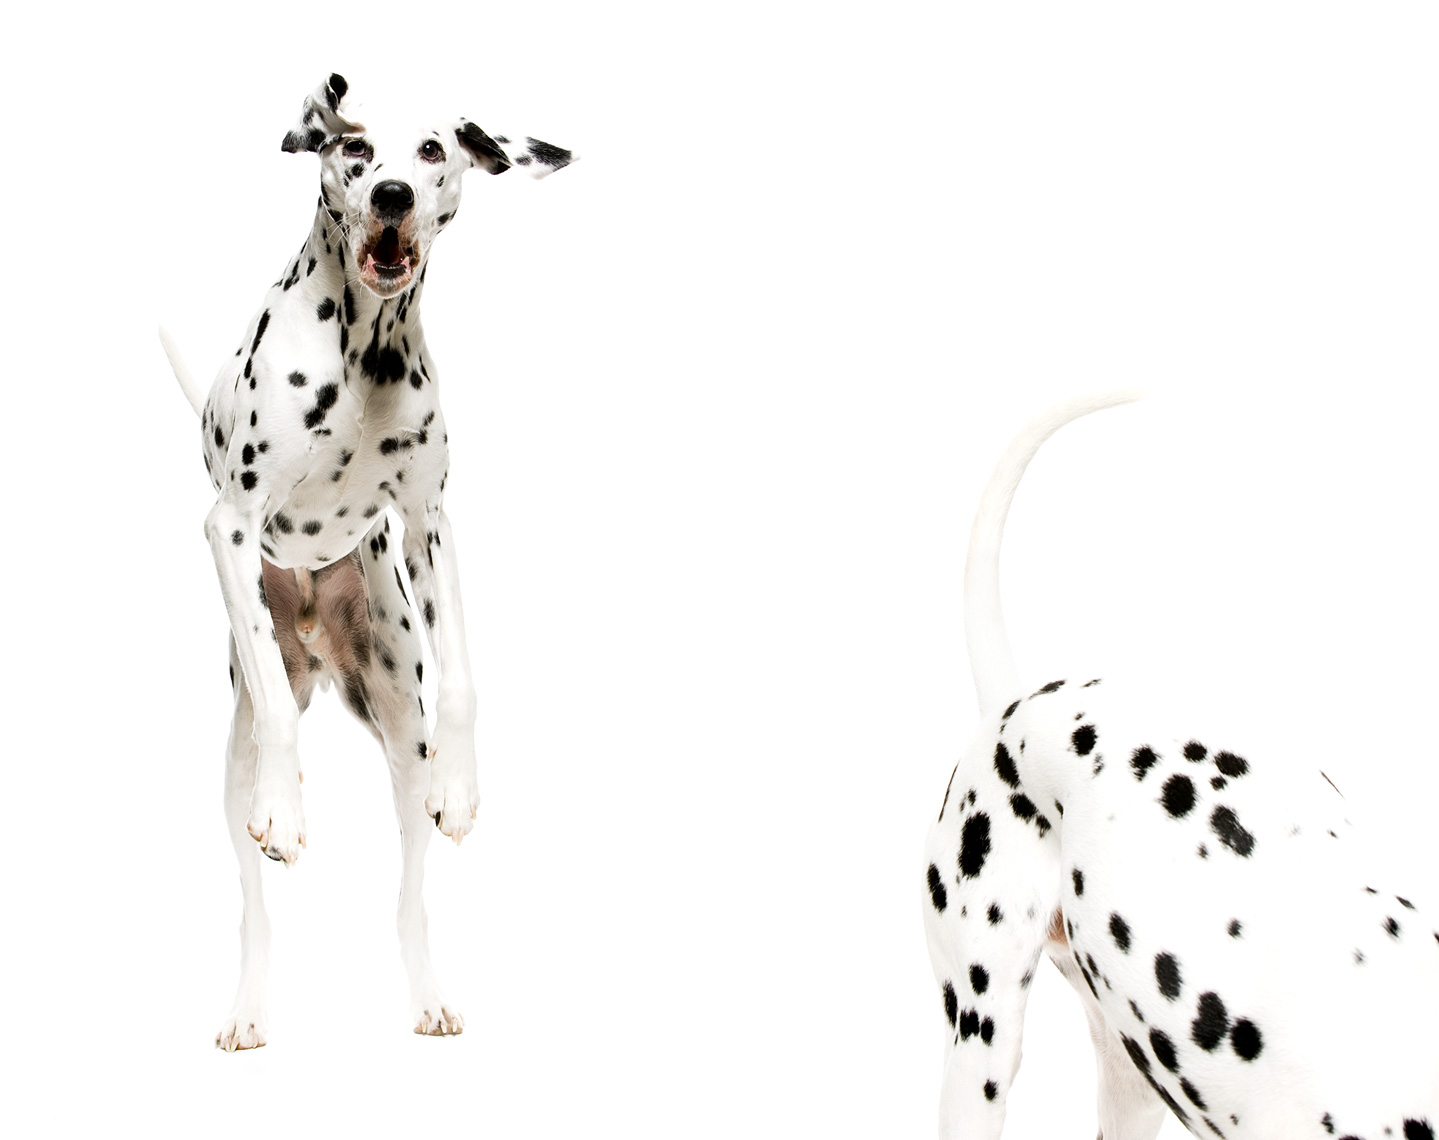 Los Angeles Dog Photography, Michael Brian, pet, cat, Dalmatian jumping, Studio portrait